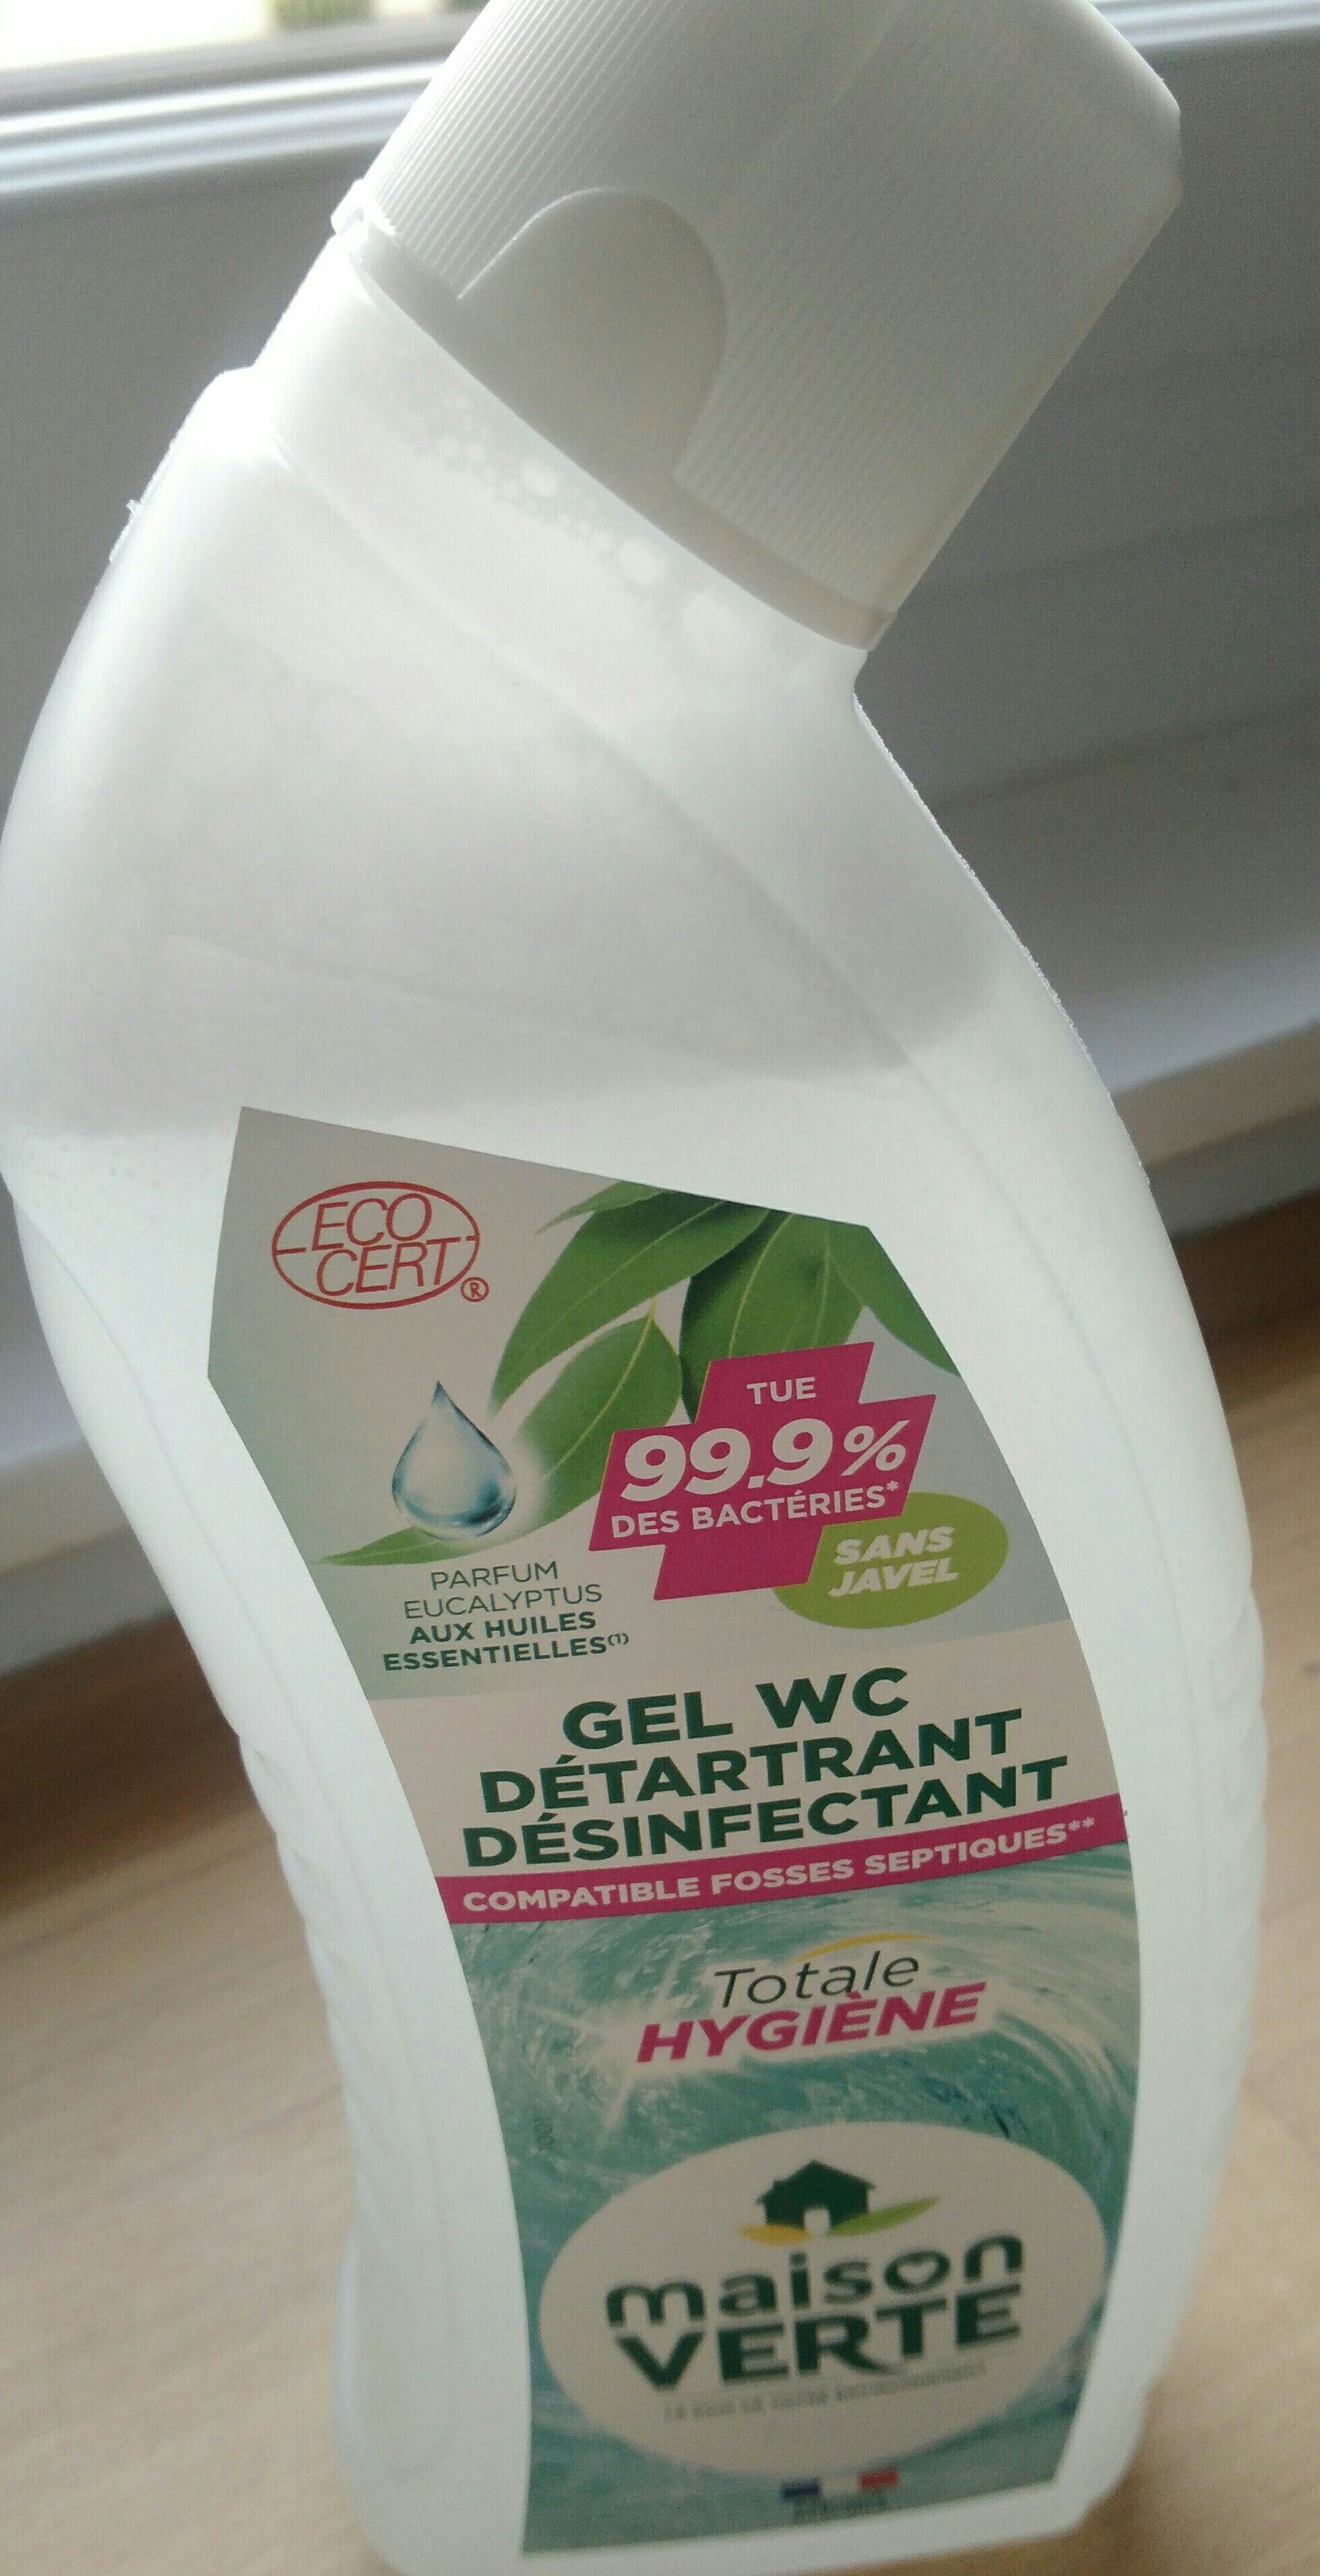 gel wc maison.verte - Product - fr